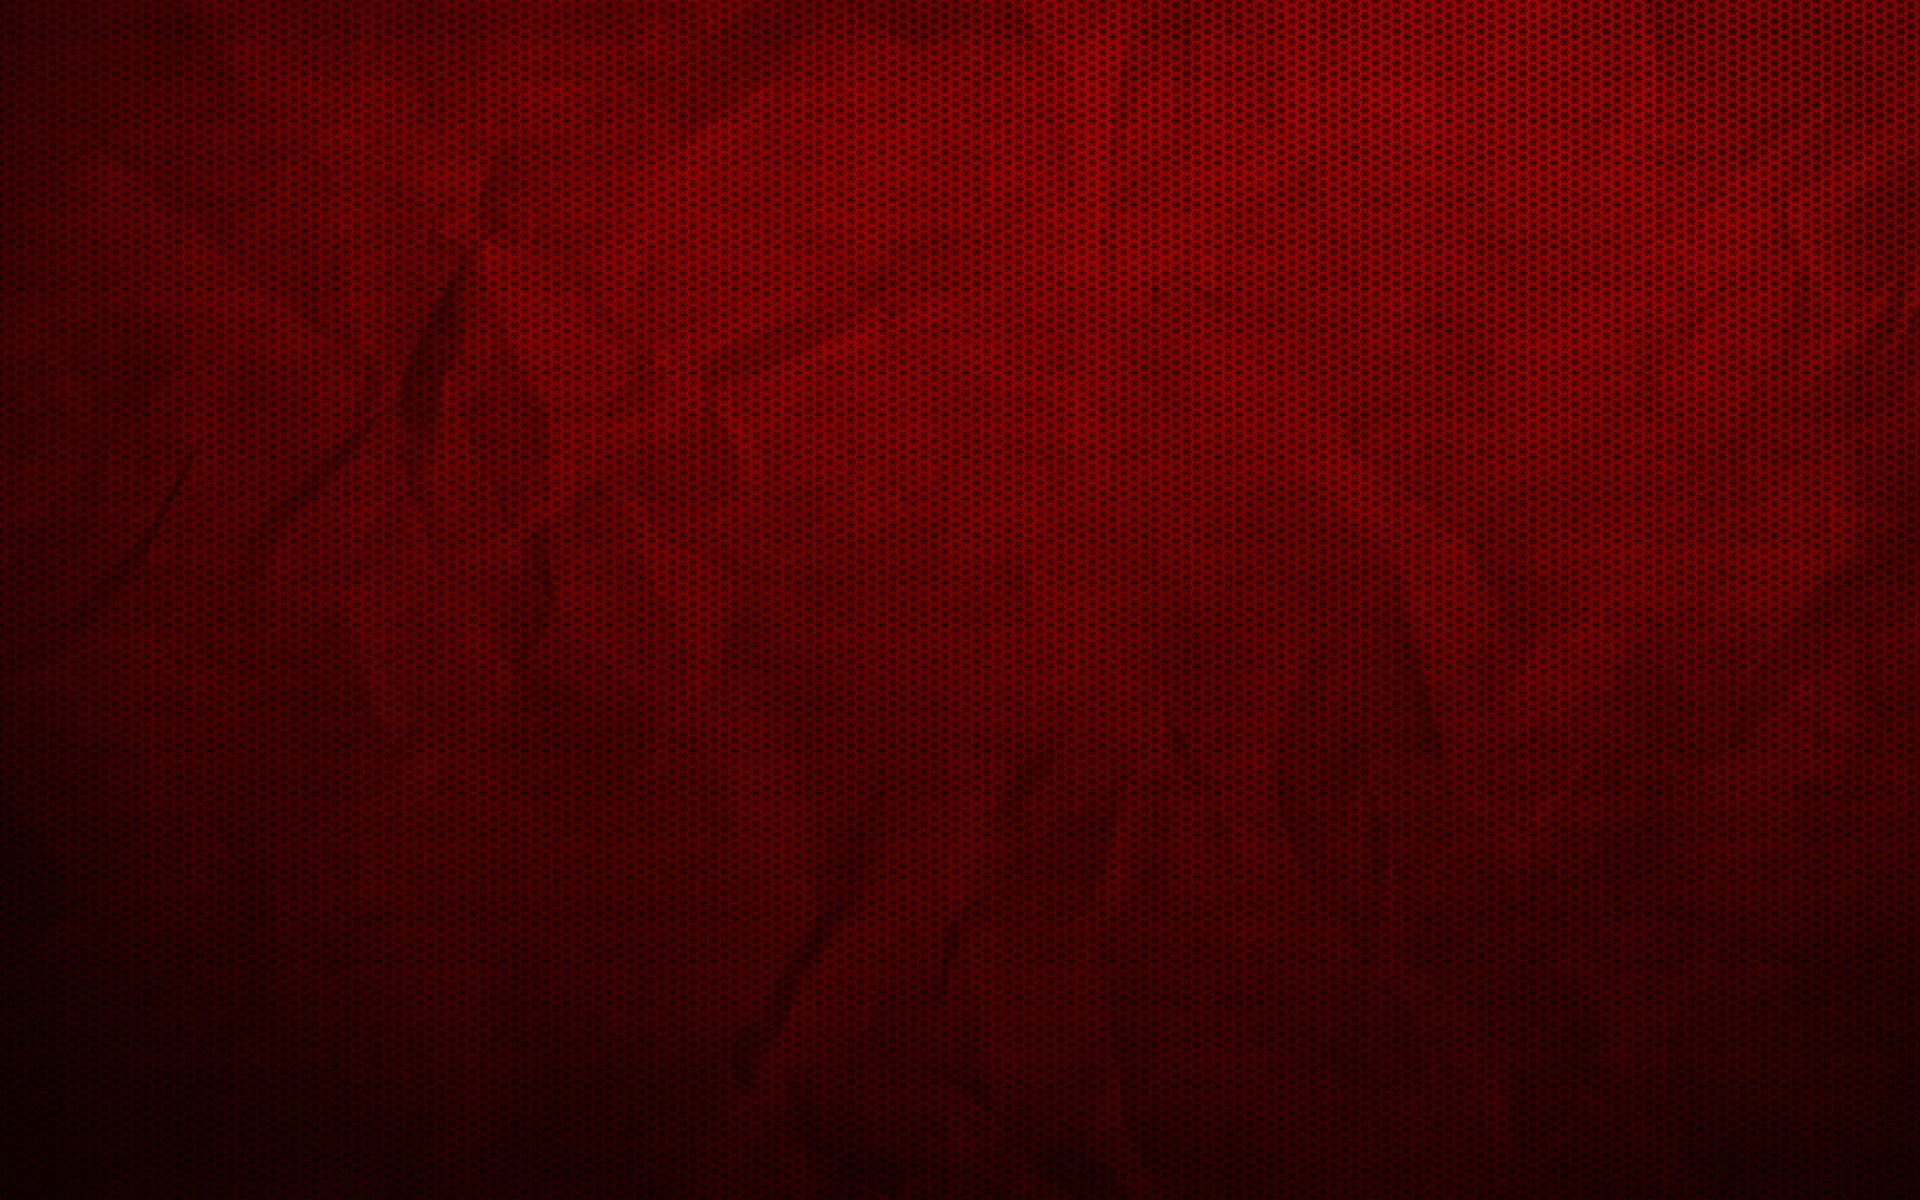 red color plain background hd wallpapers gallery Black Background 1920x1200